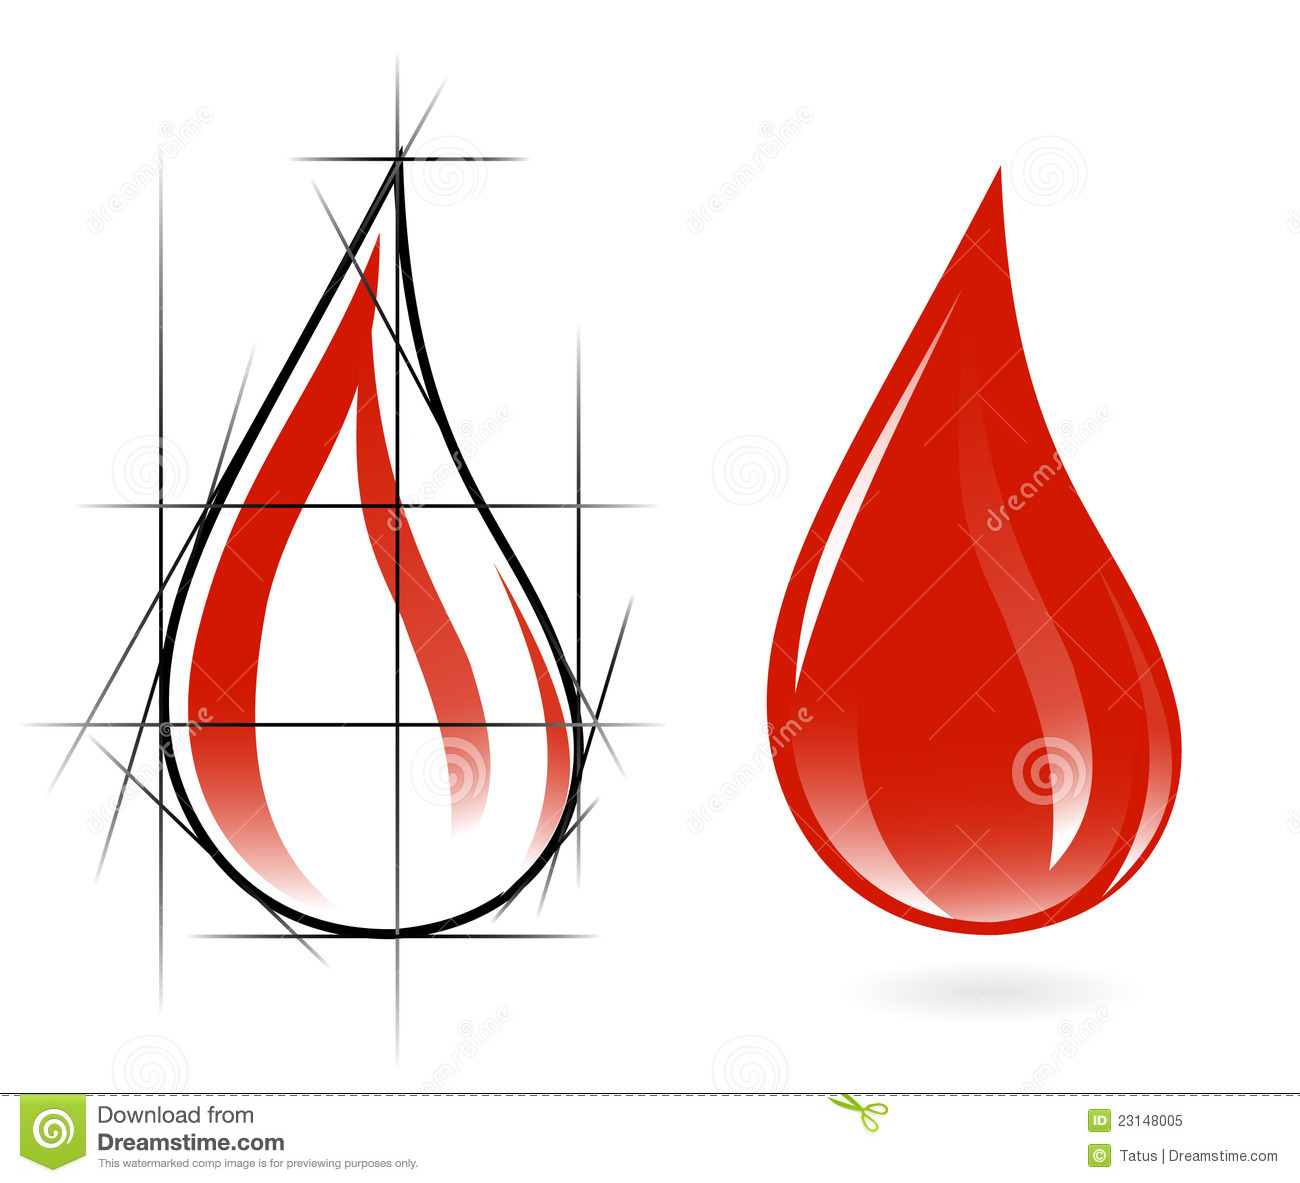 How To Draw Realistic Blood Drops